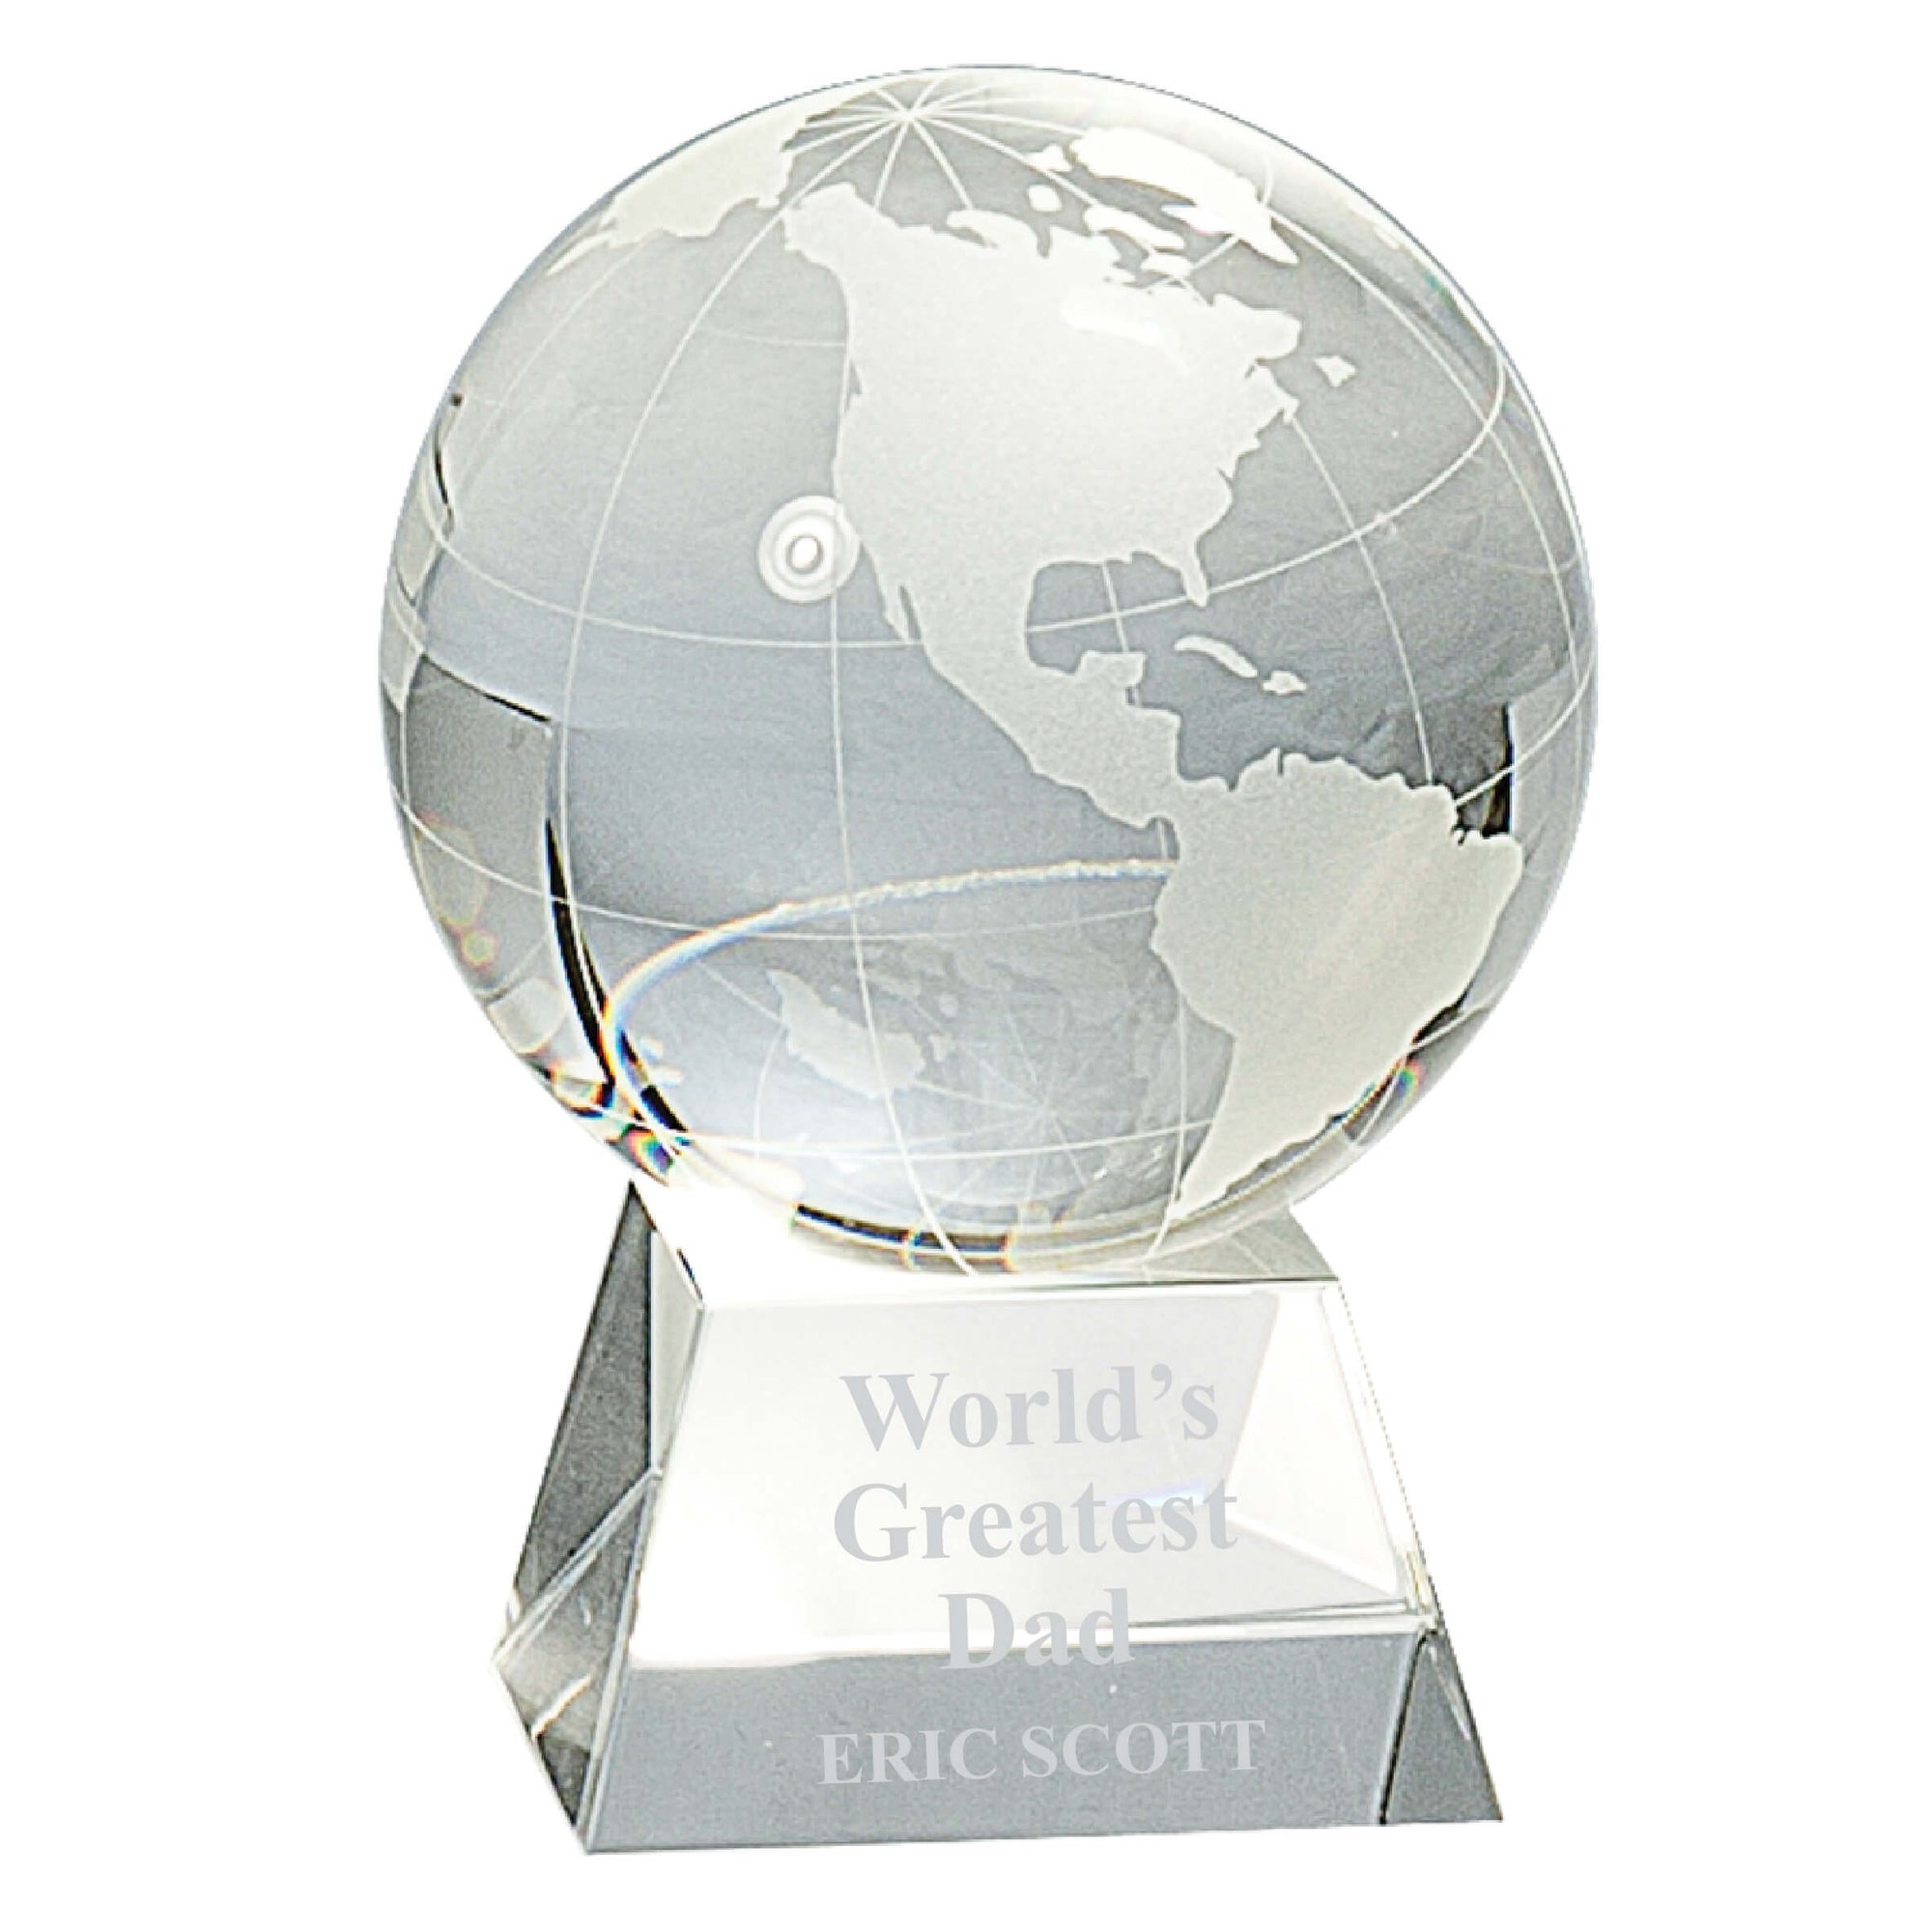 World's Greatest Dad Crystal Globe